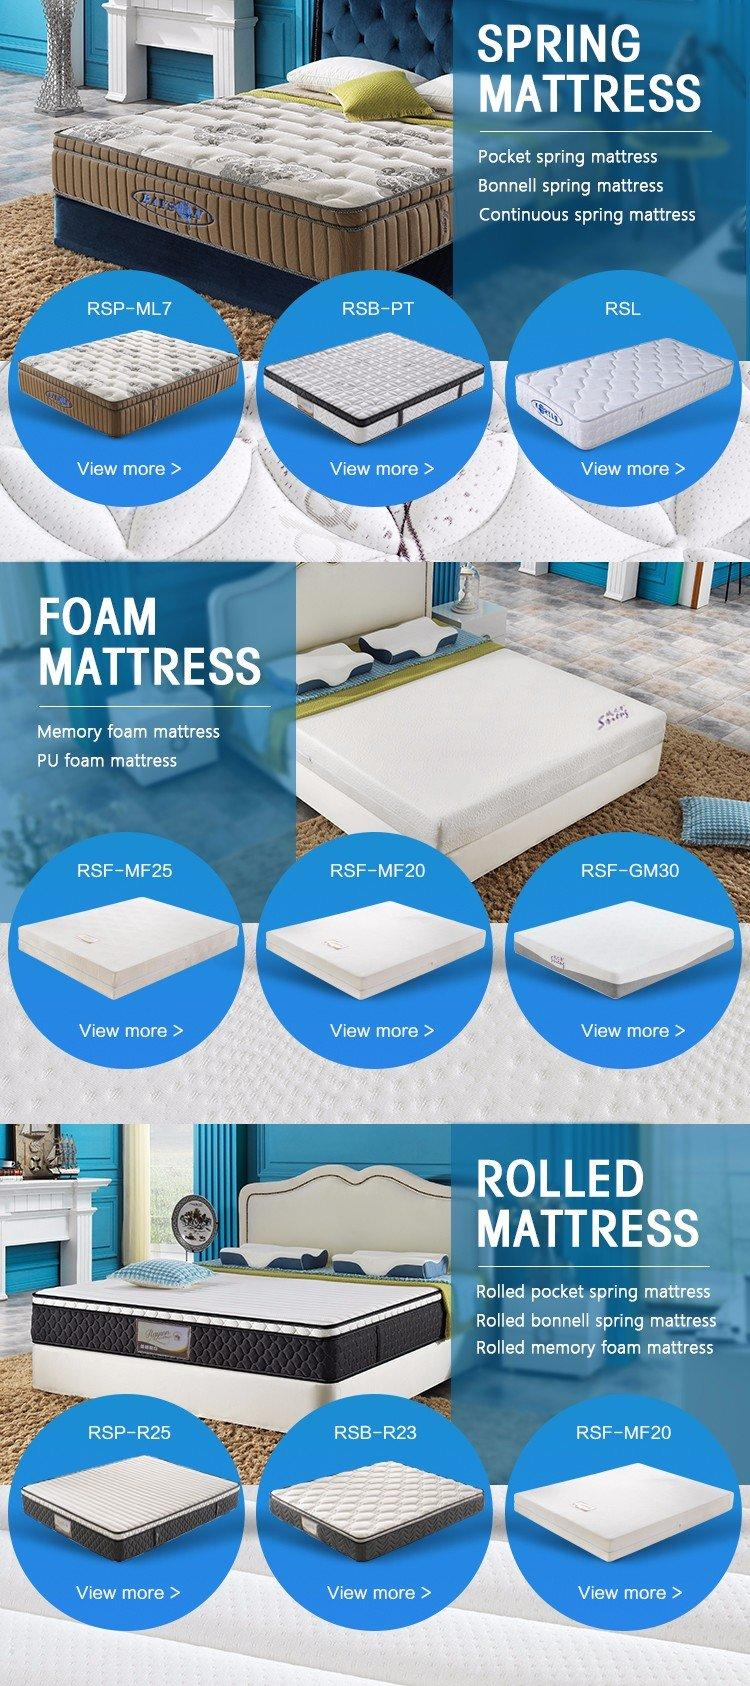 Rayson Mattress customized spring mattress vs coir mattress vs foam mattress Supply